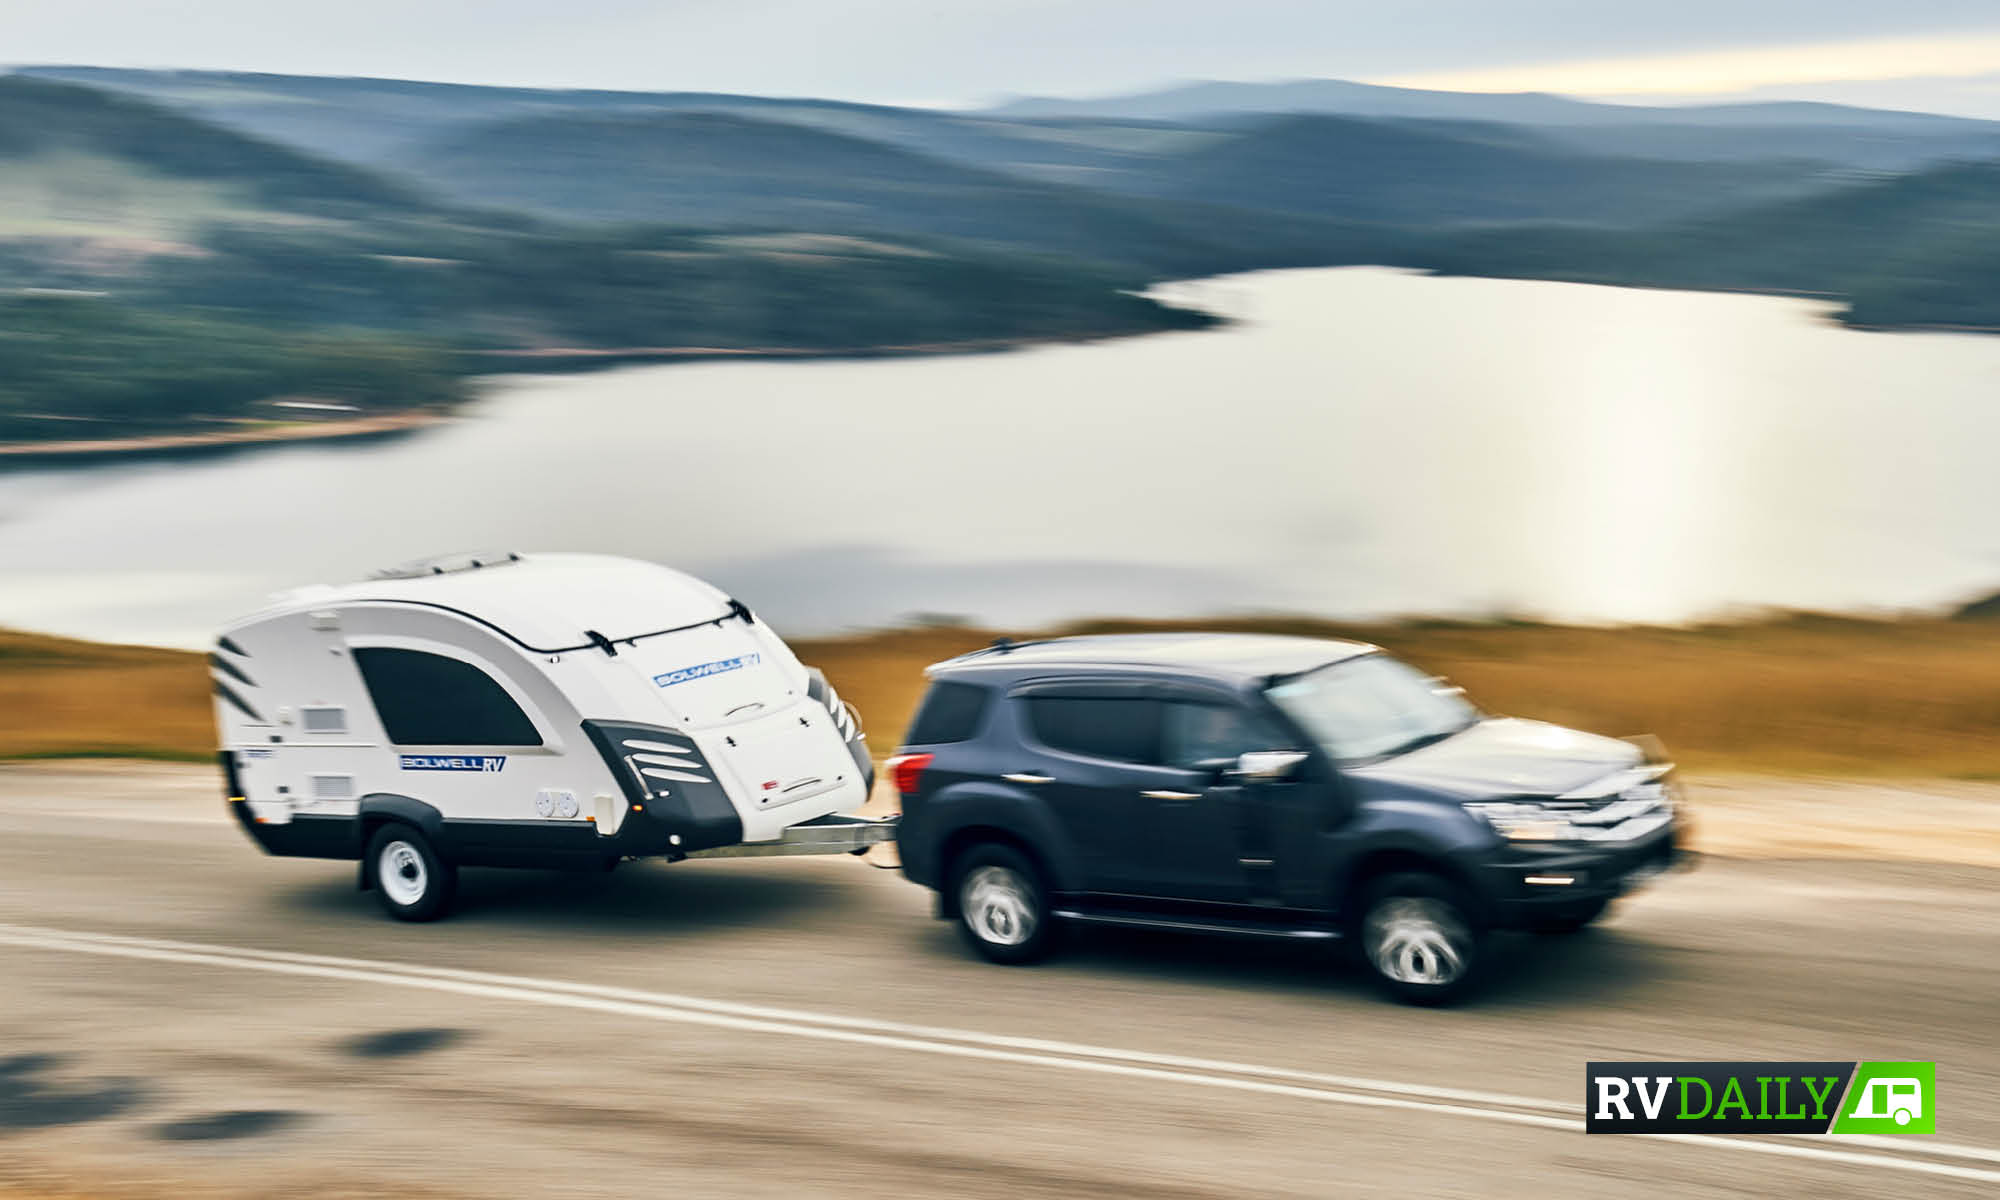 FIND OUT WHY THIS BOLWELL CAMPER IS ON THE EDGE